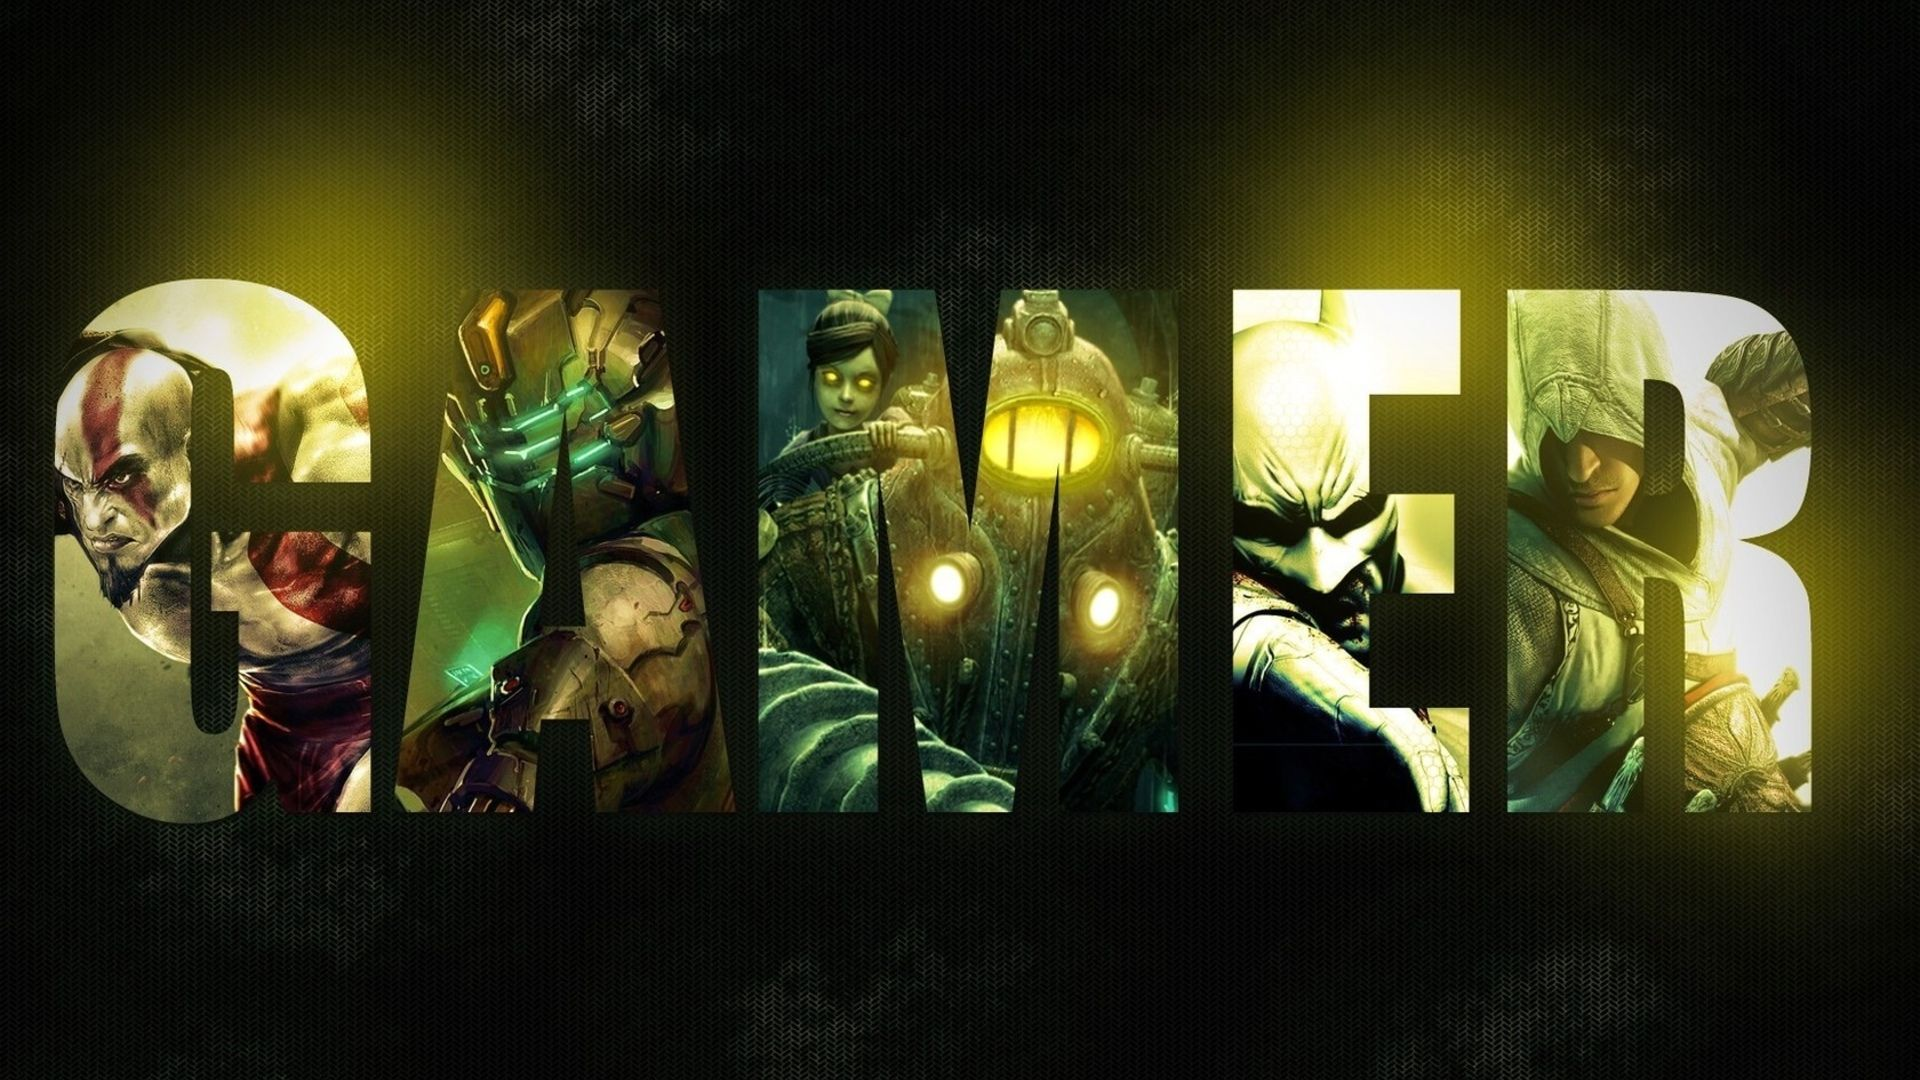 Bioshock God Of War Assassin S Creed Dead Space Video Games Games Collages Wallpaper 1920x1080 Gaming Wallpapers Hd Gaming Wallpapers Best Gaming Wallpapers